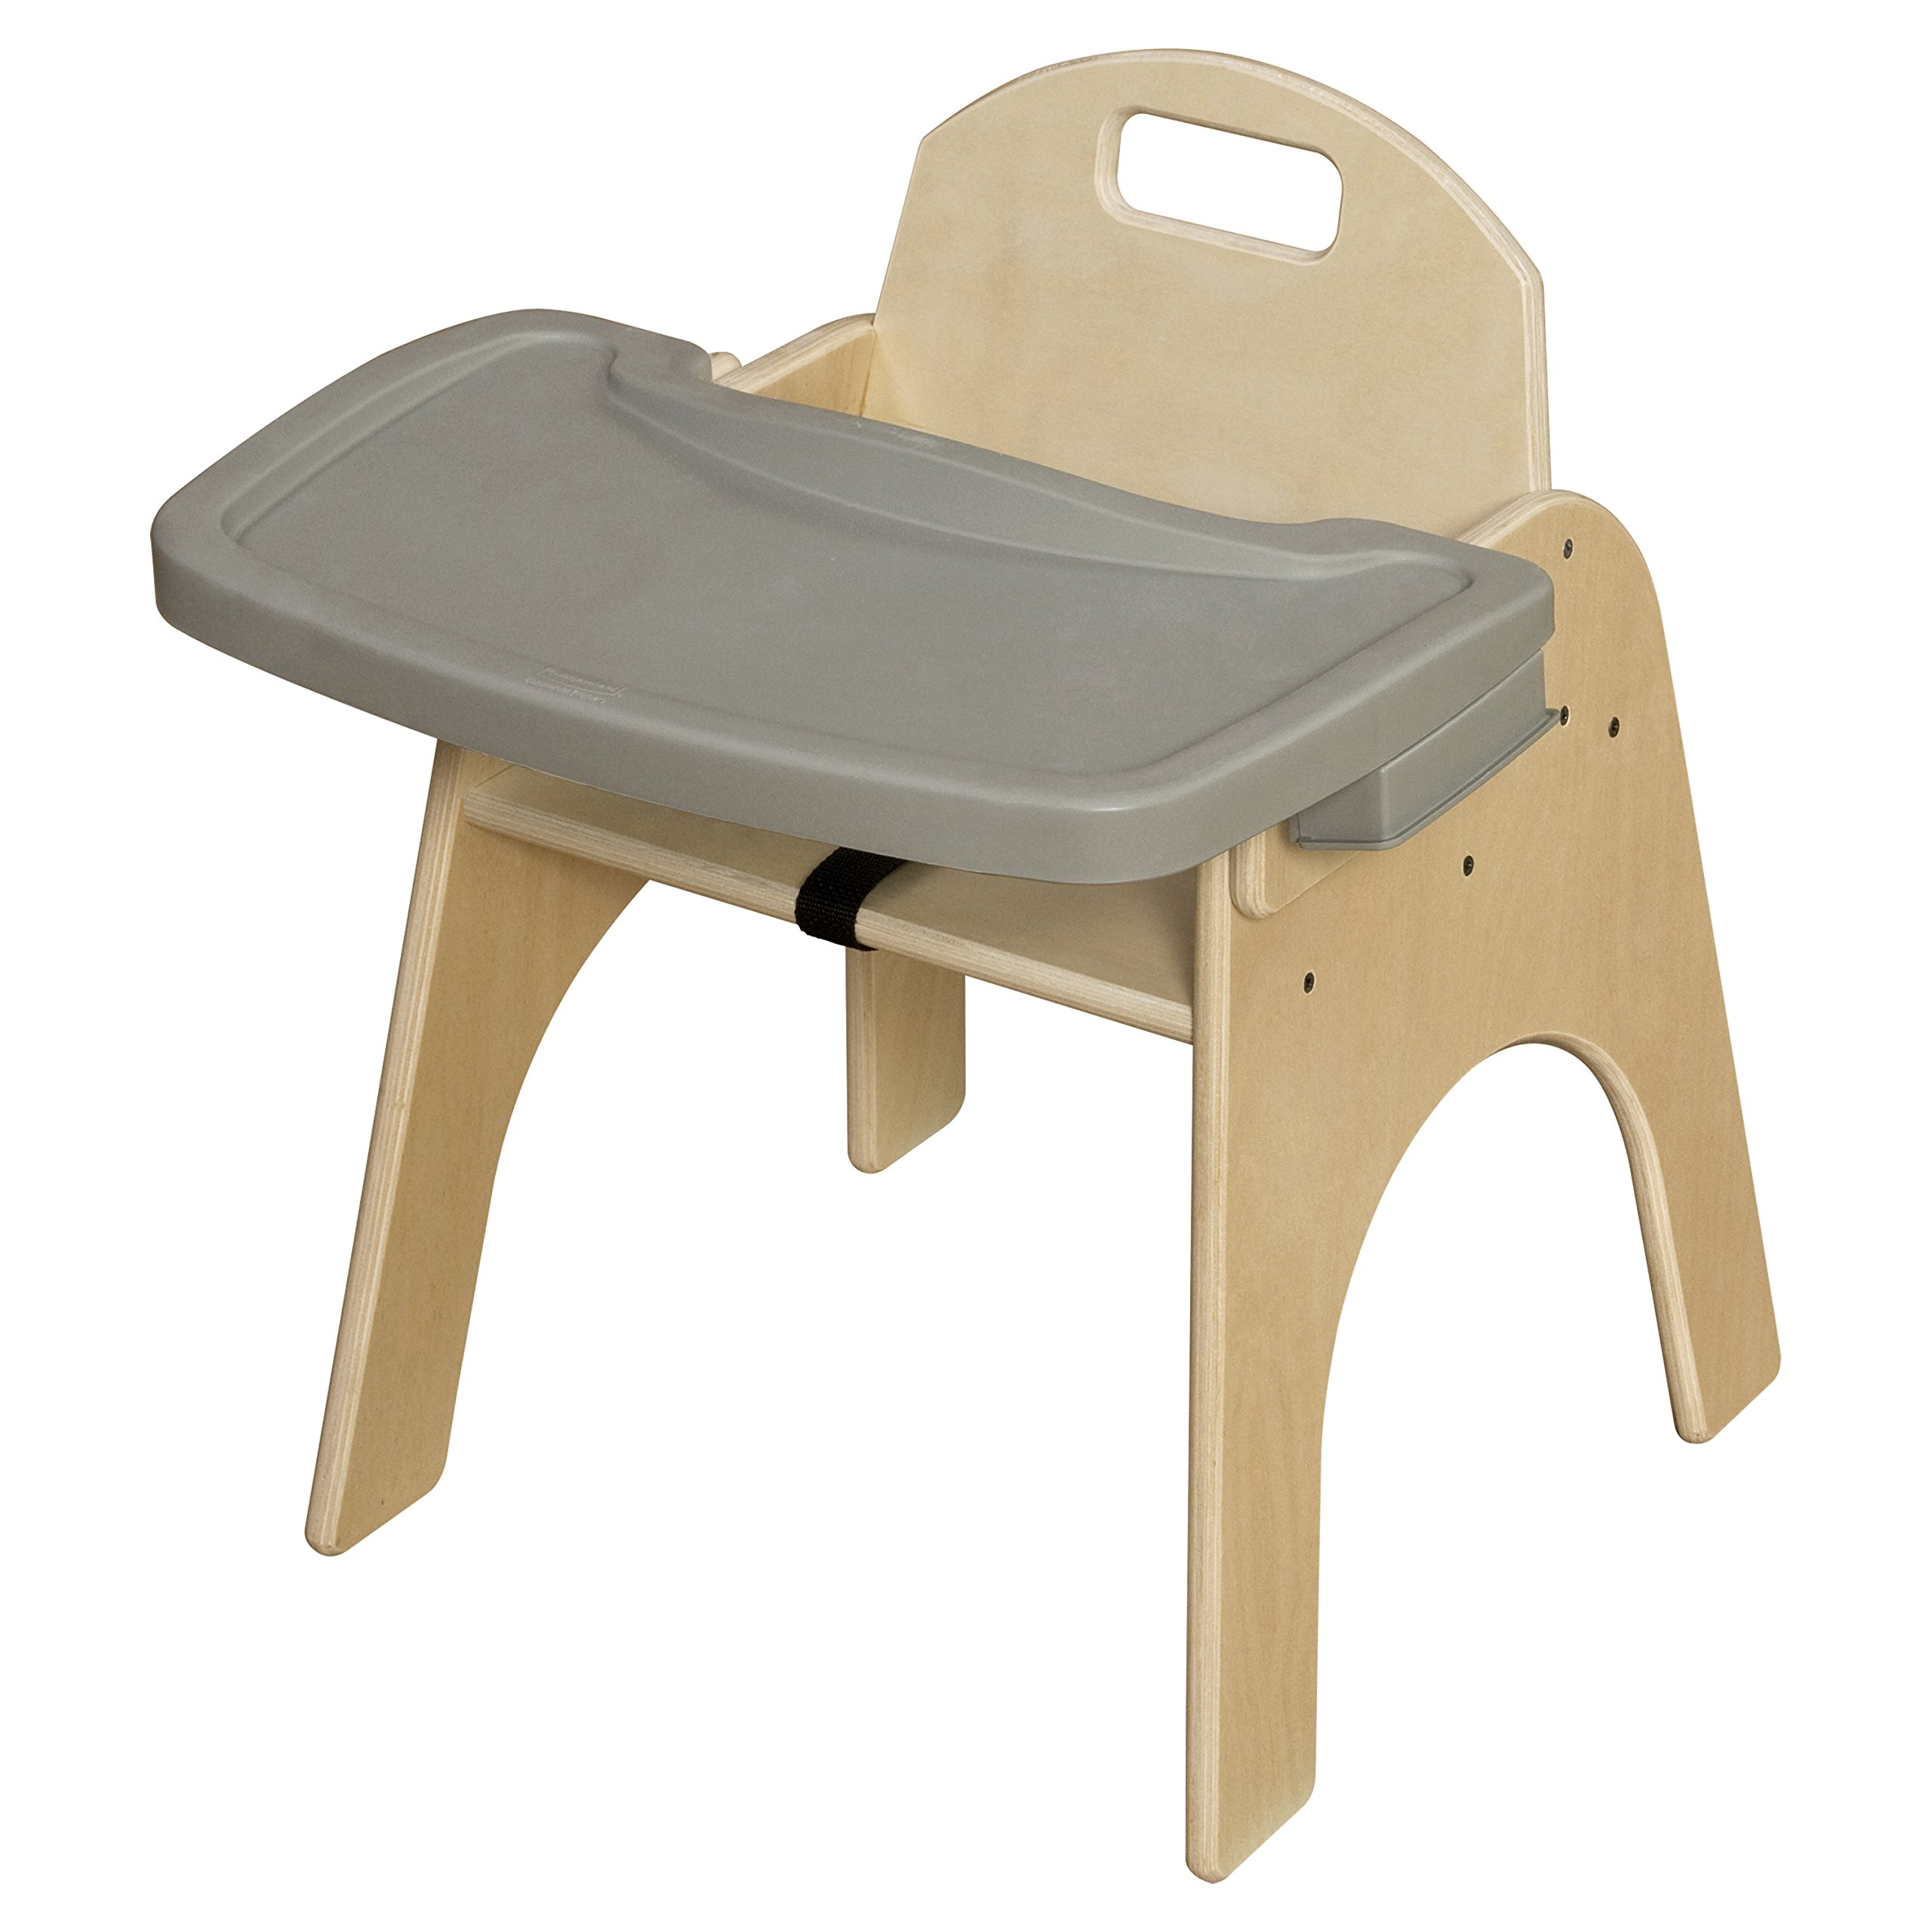 Wood Designs Stackable Woodie Kids Chair with Adjustable Tray, 13'' High Seat